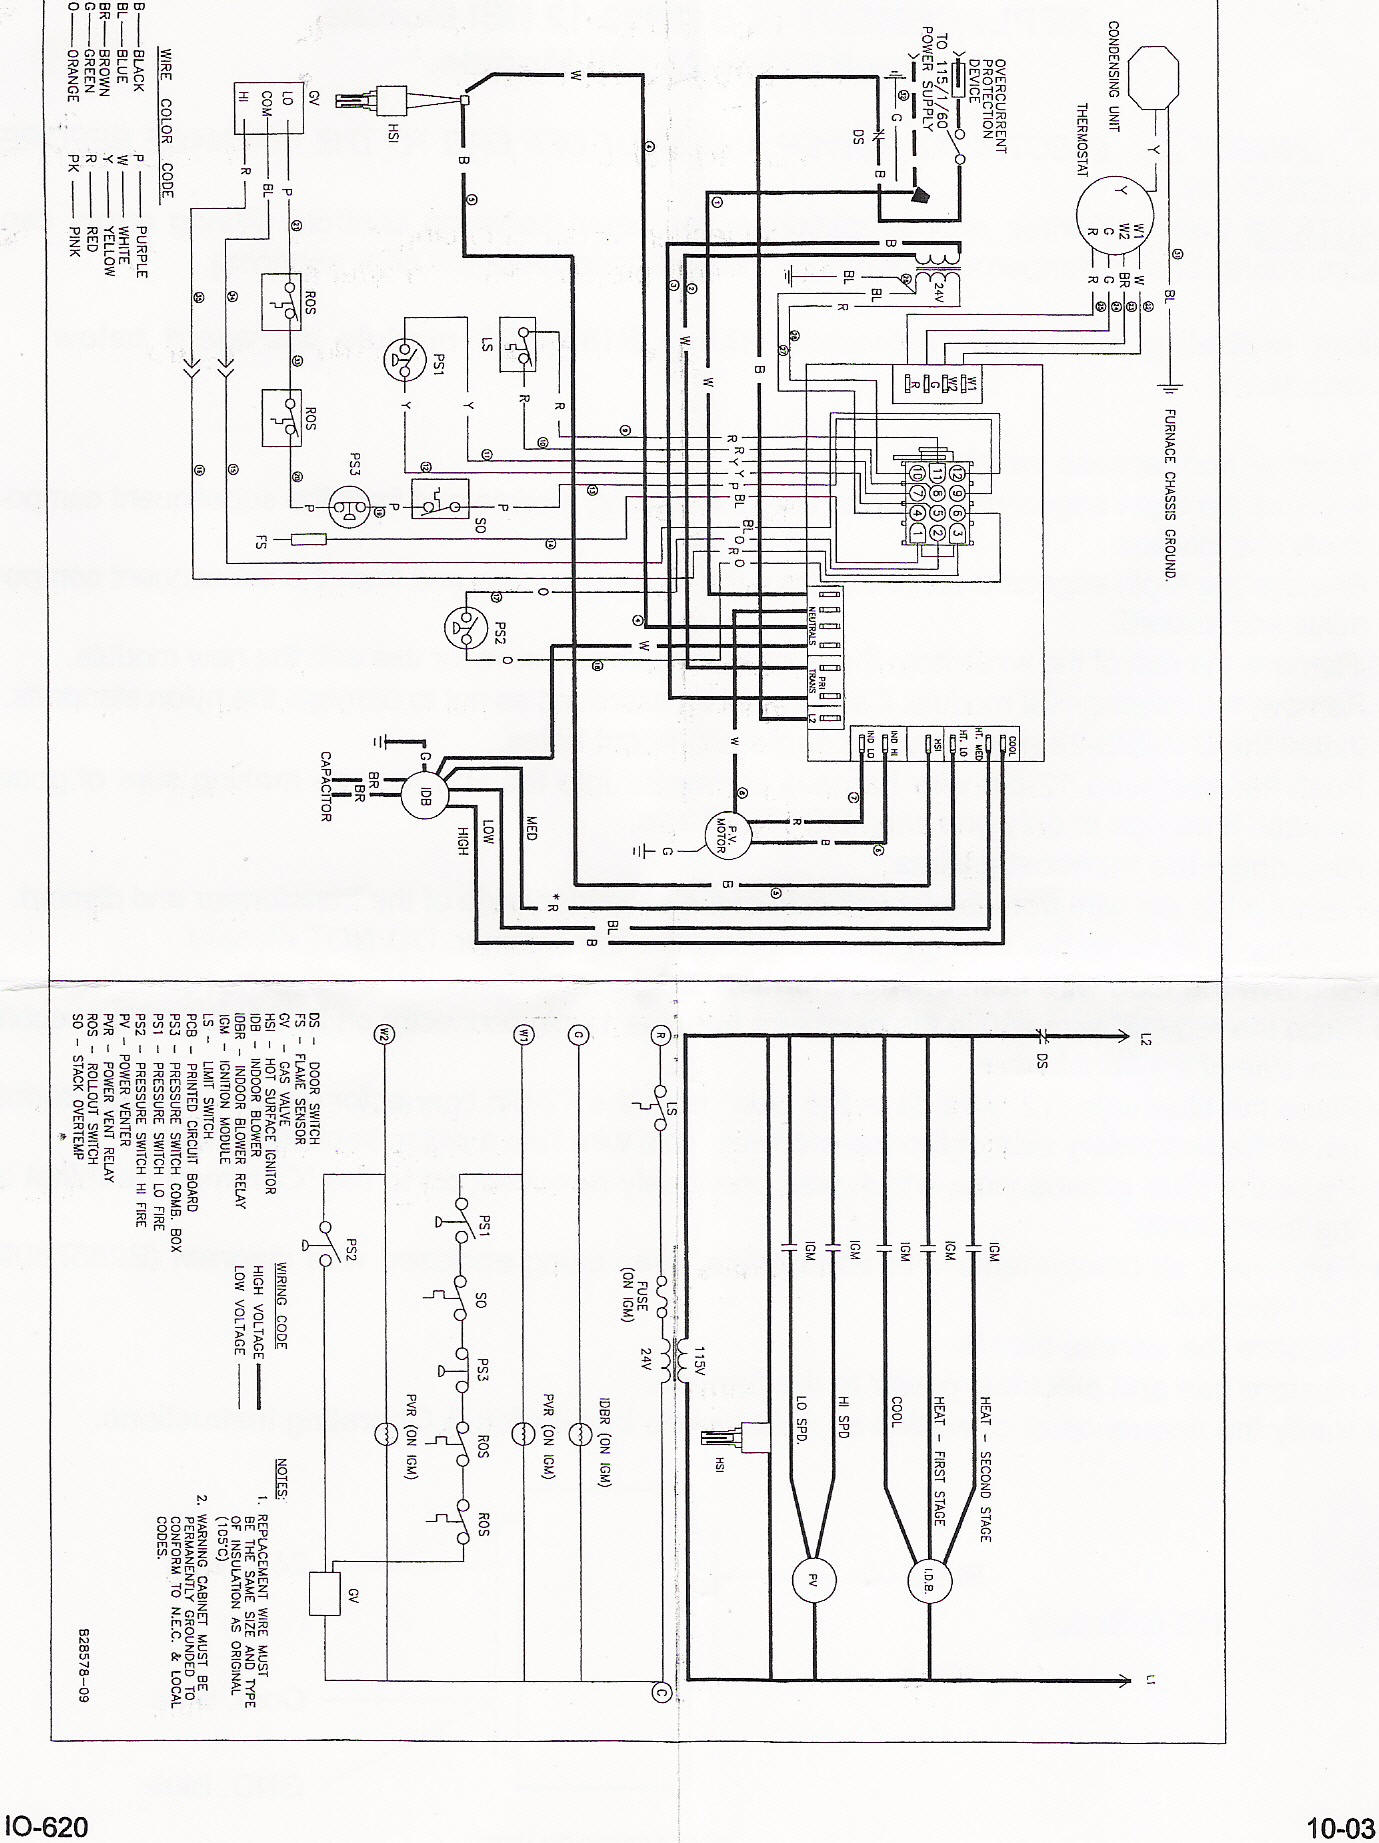 goodma2 instr goodman control board b18099 23 instructions janitrol air conditioner wiring diagram at gsmx.co